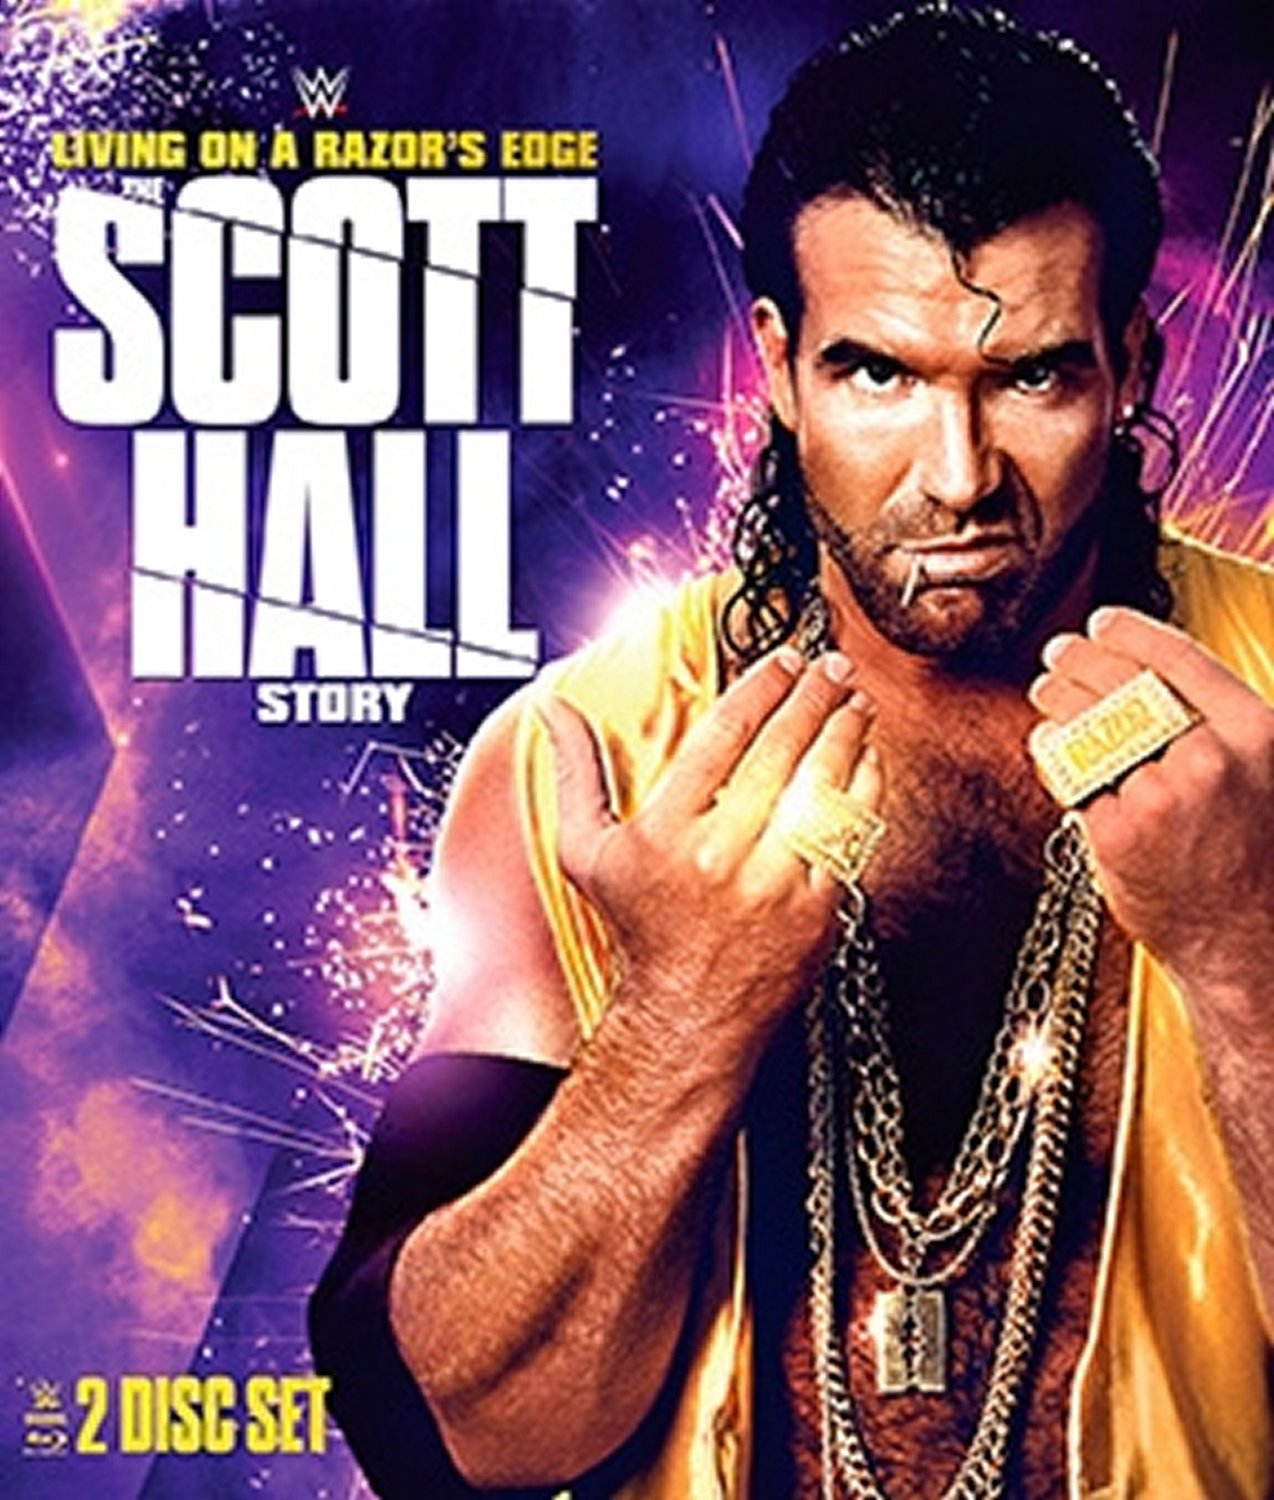 WWE - WWE: Living on a Razor's Edge: The Scott Hall Story